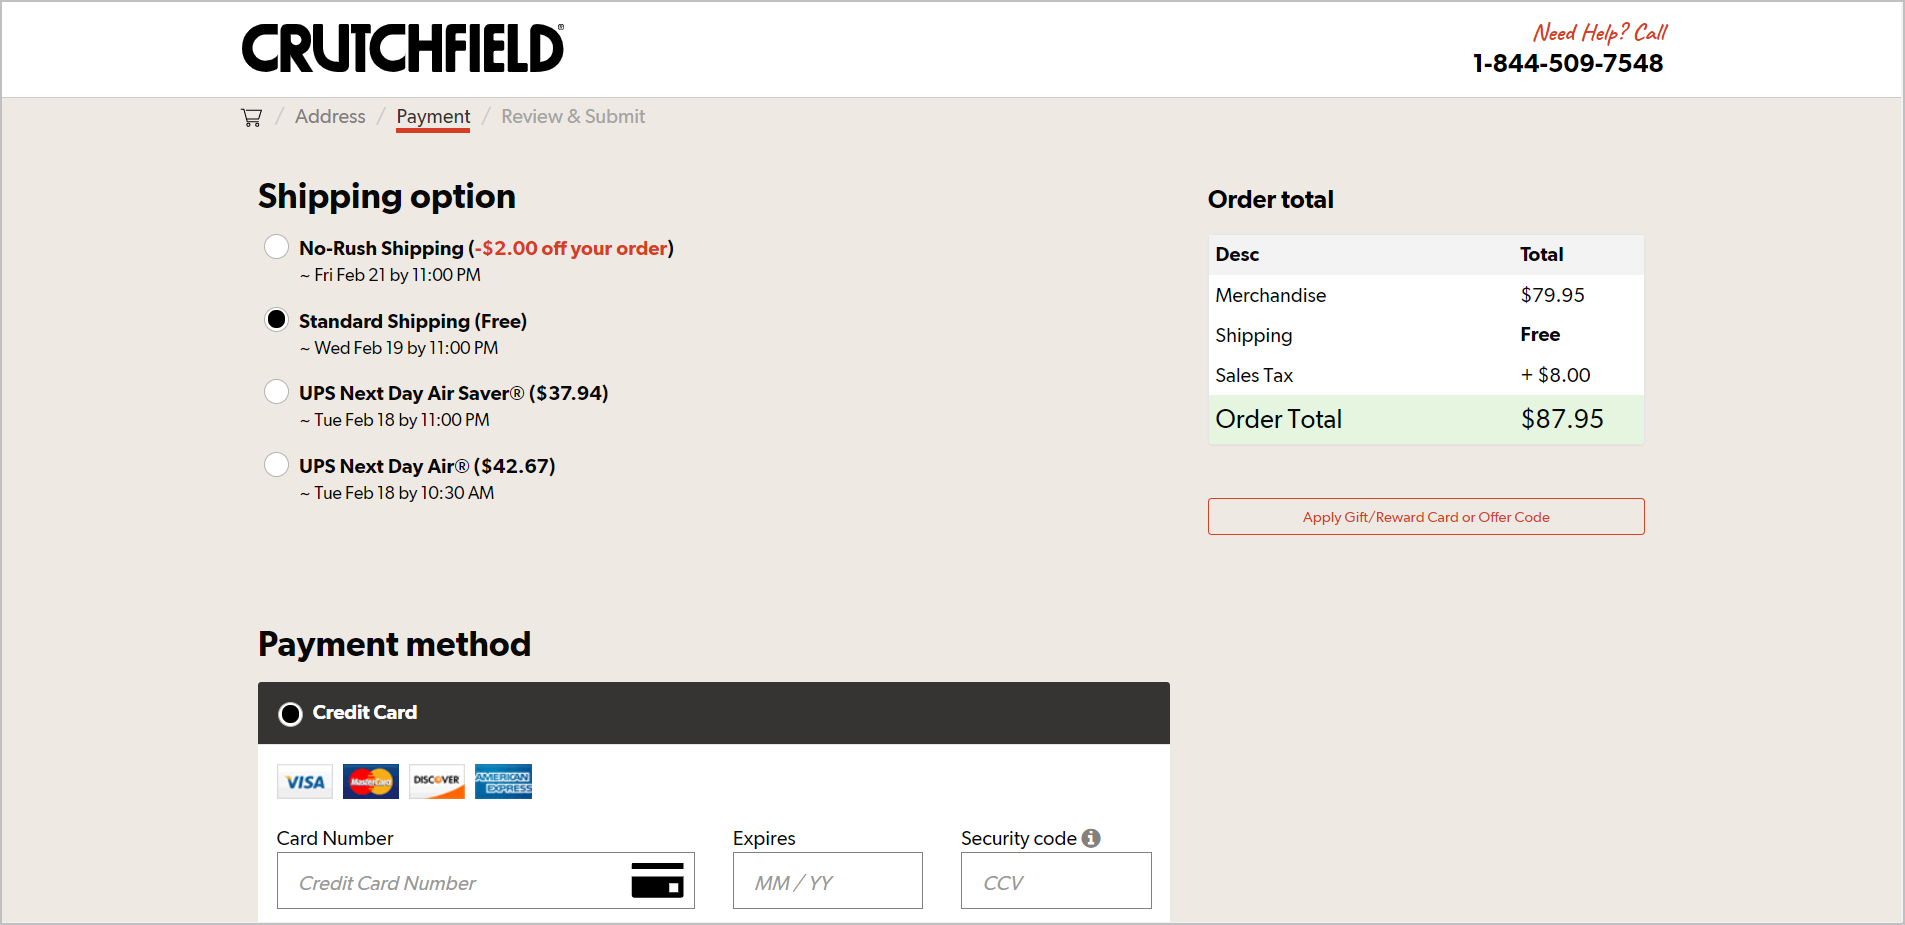 "failure to leverage the customer's excitement in checkout example - crutchfield.com's payment page with the shipping options and payment methods listed on the left and the order total on the right side. the order total section shows the total for ""merchandise"" but does not show the product name nor the image"